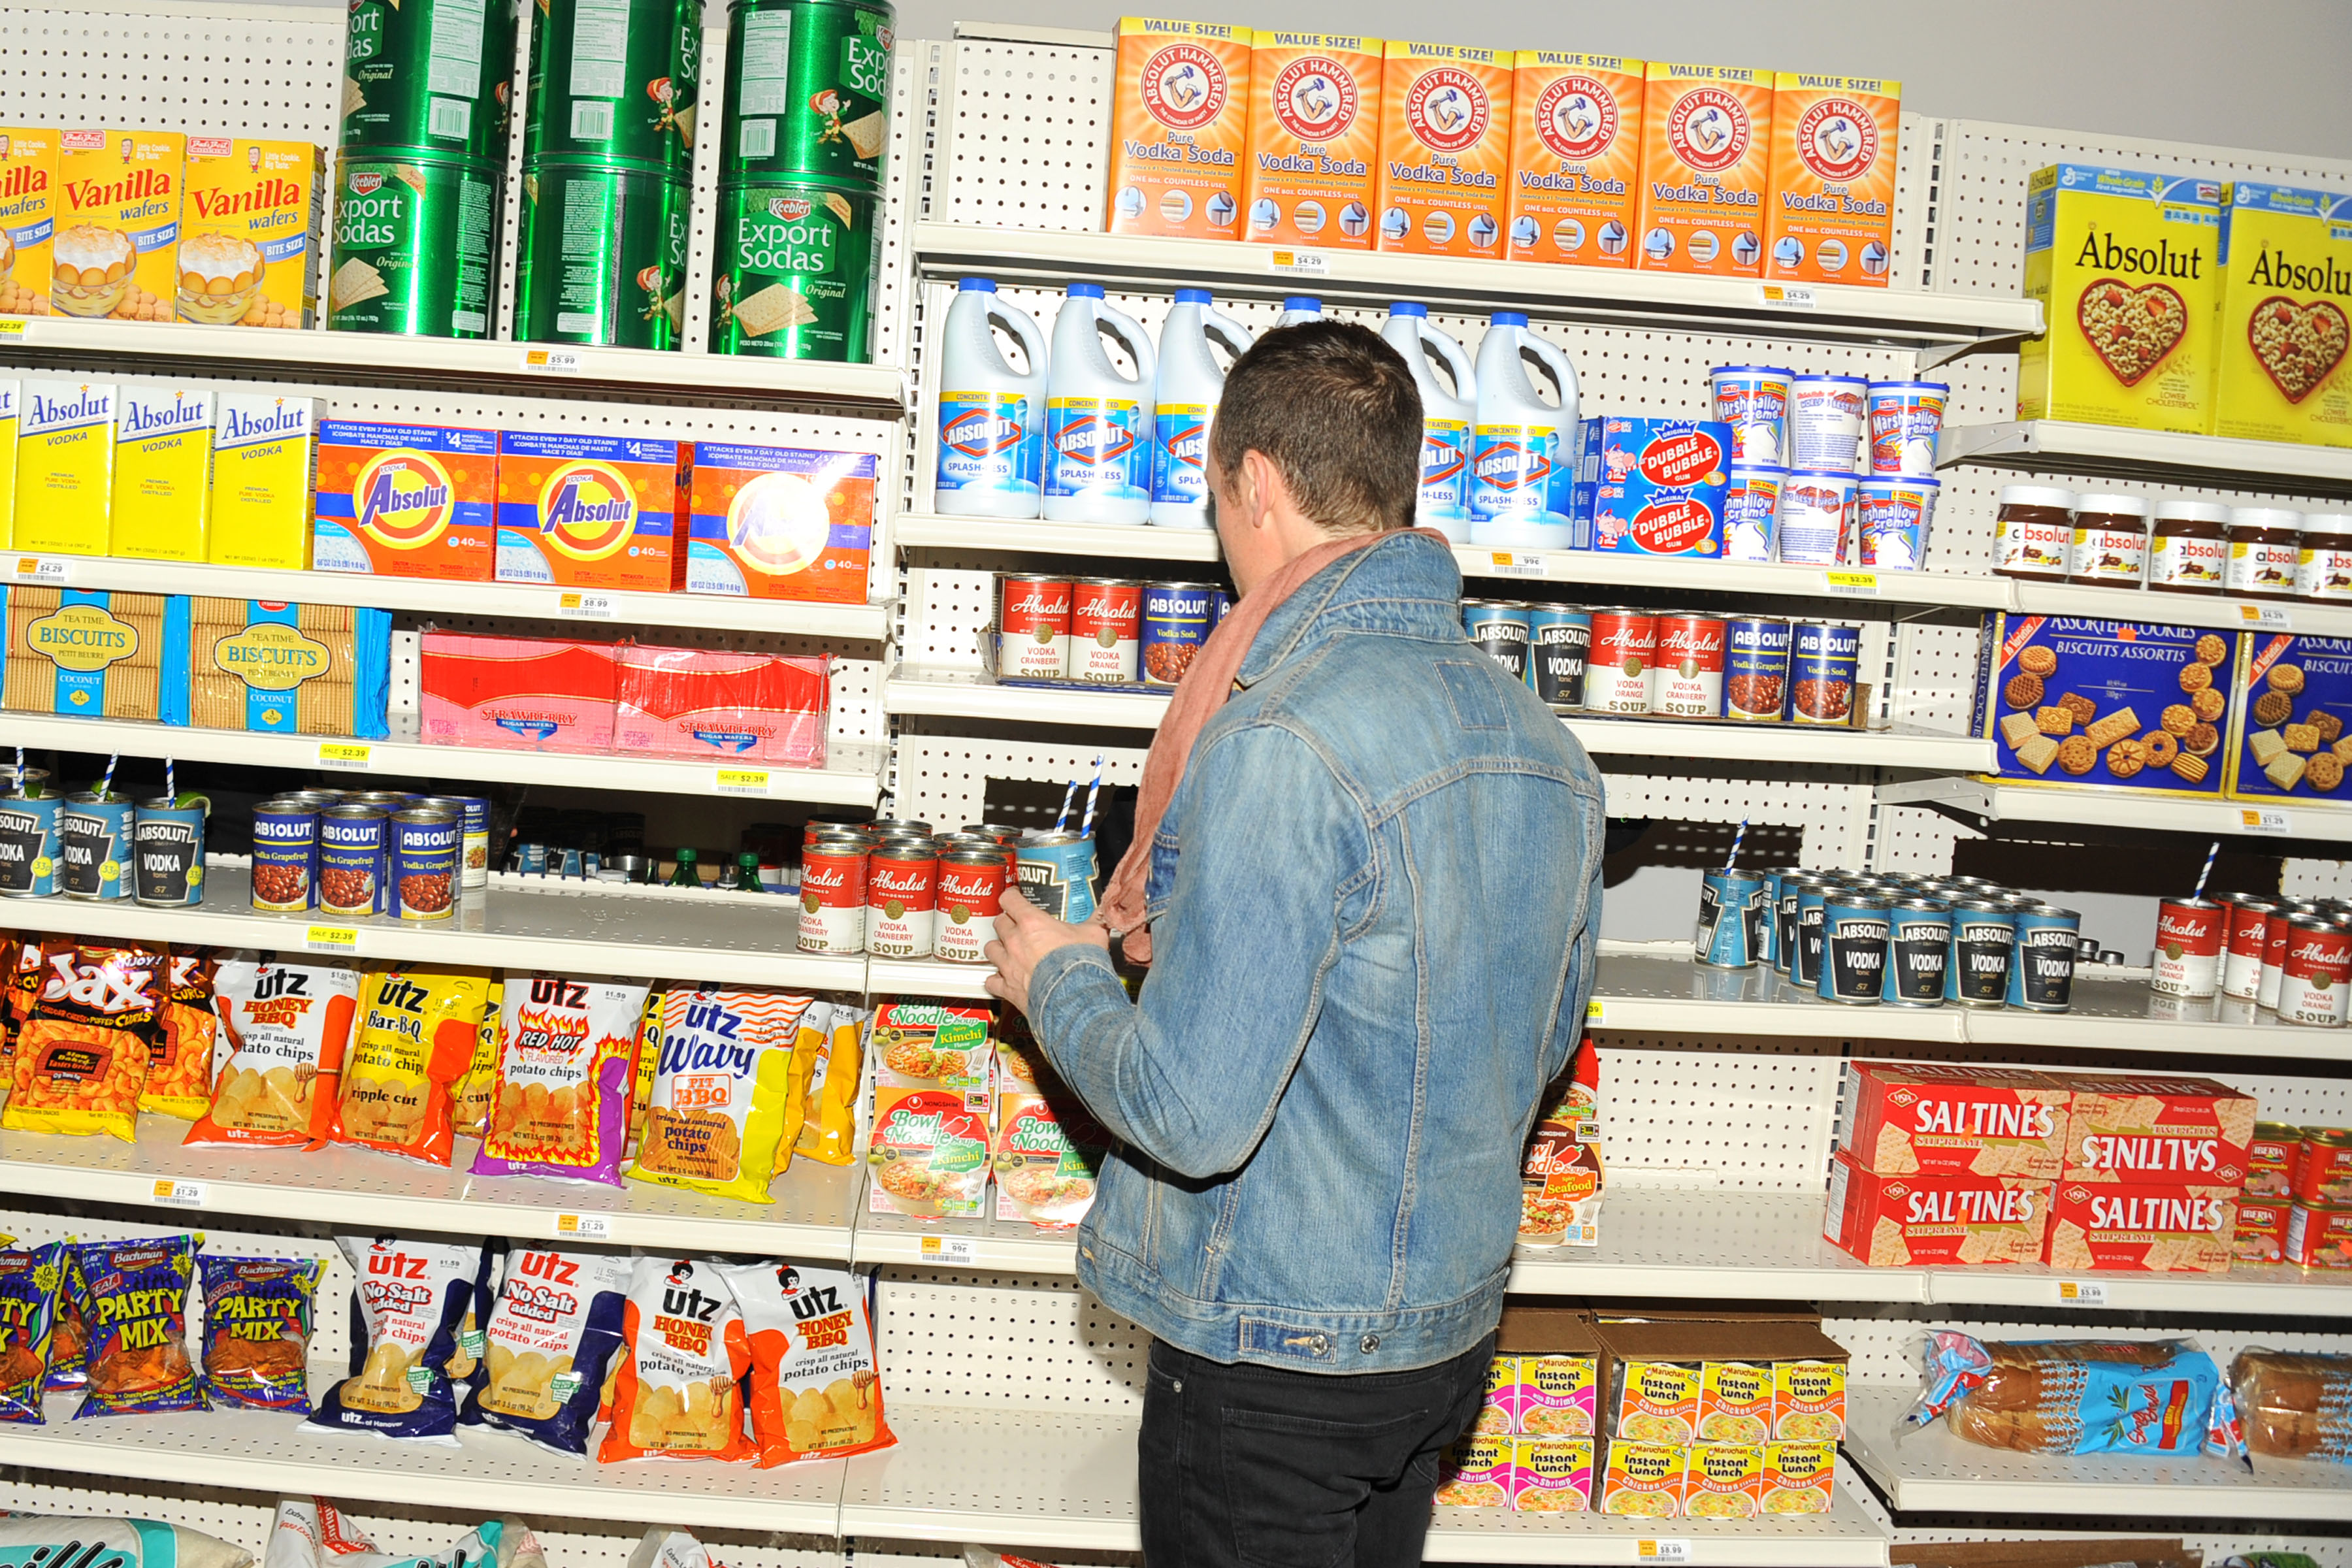 The faux supermarket (Photo: Patrick McMullan)